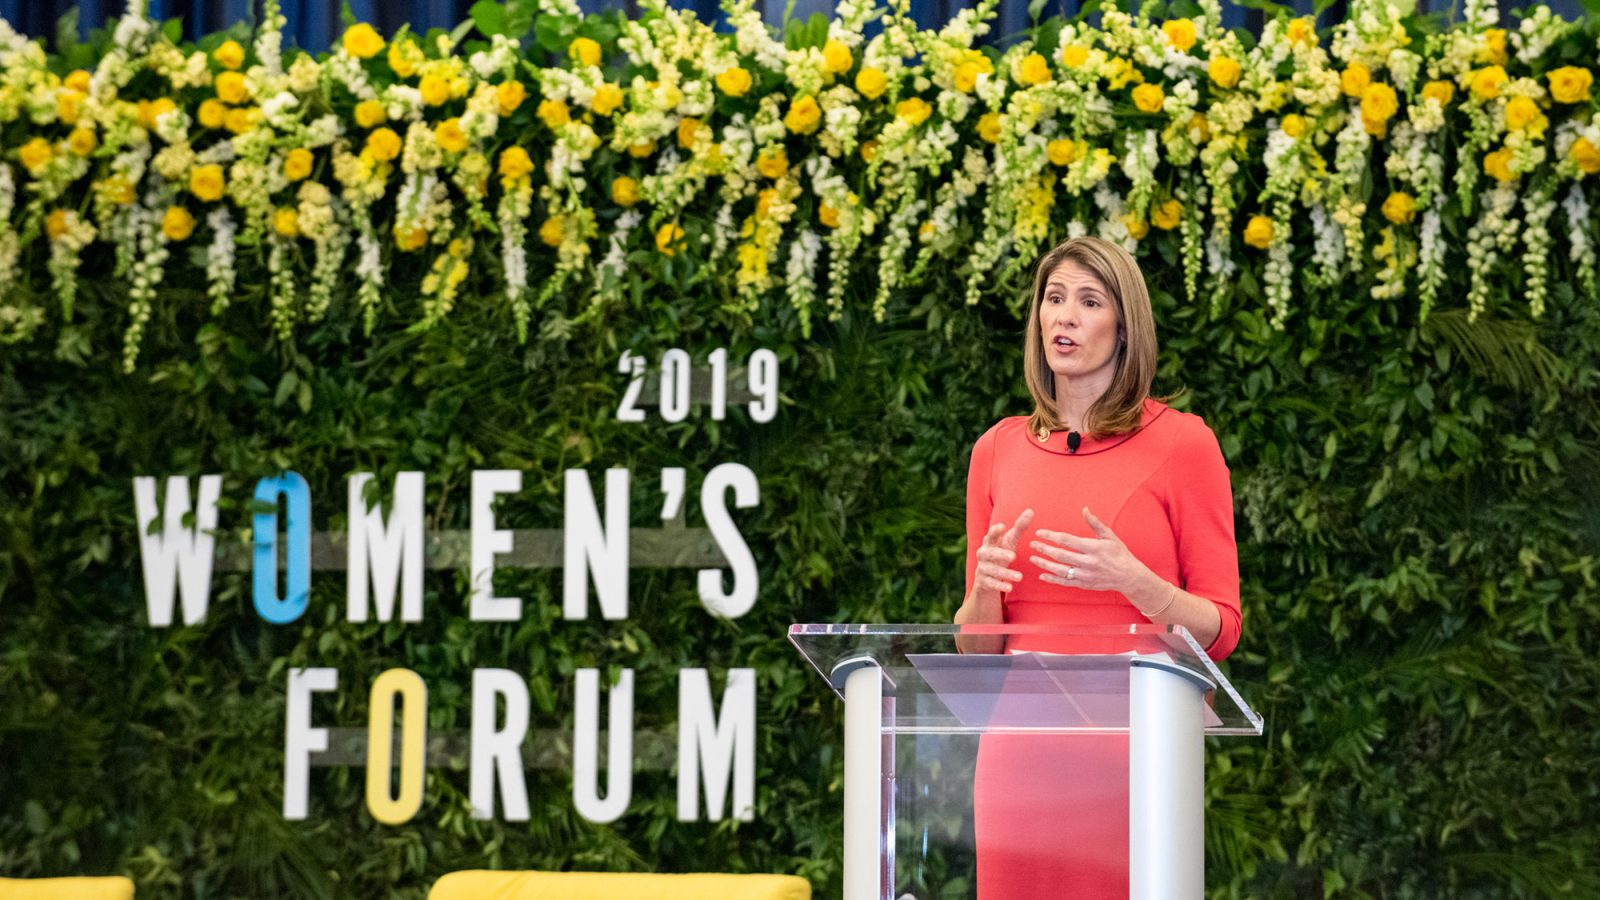 Lori Trahan speaks on stage standing at the microphone with 2019 Women's Forum signage in the background.